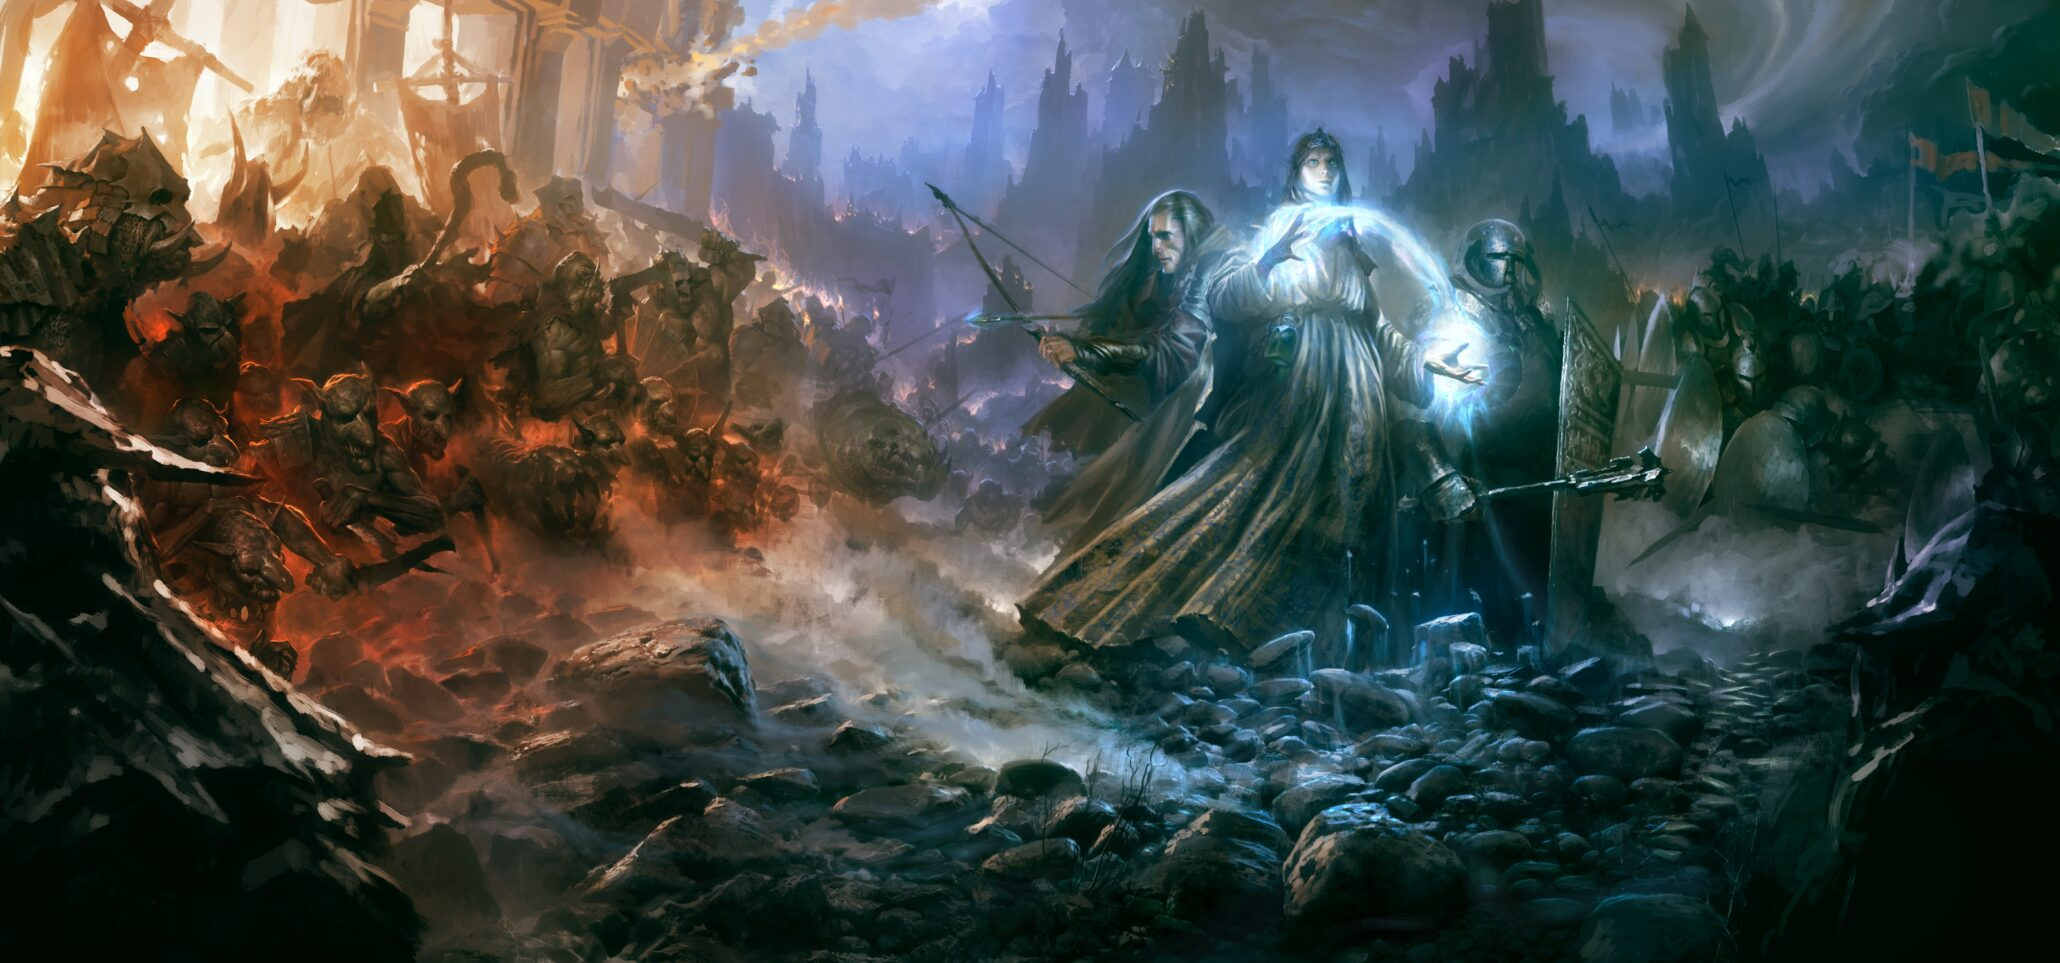 SpellForce 3 Beta Weekend Live Now - Try This RTS/RPG ...  SpellForce 3 Be...